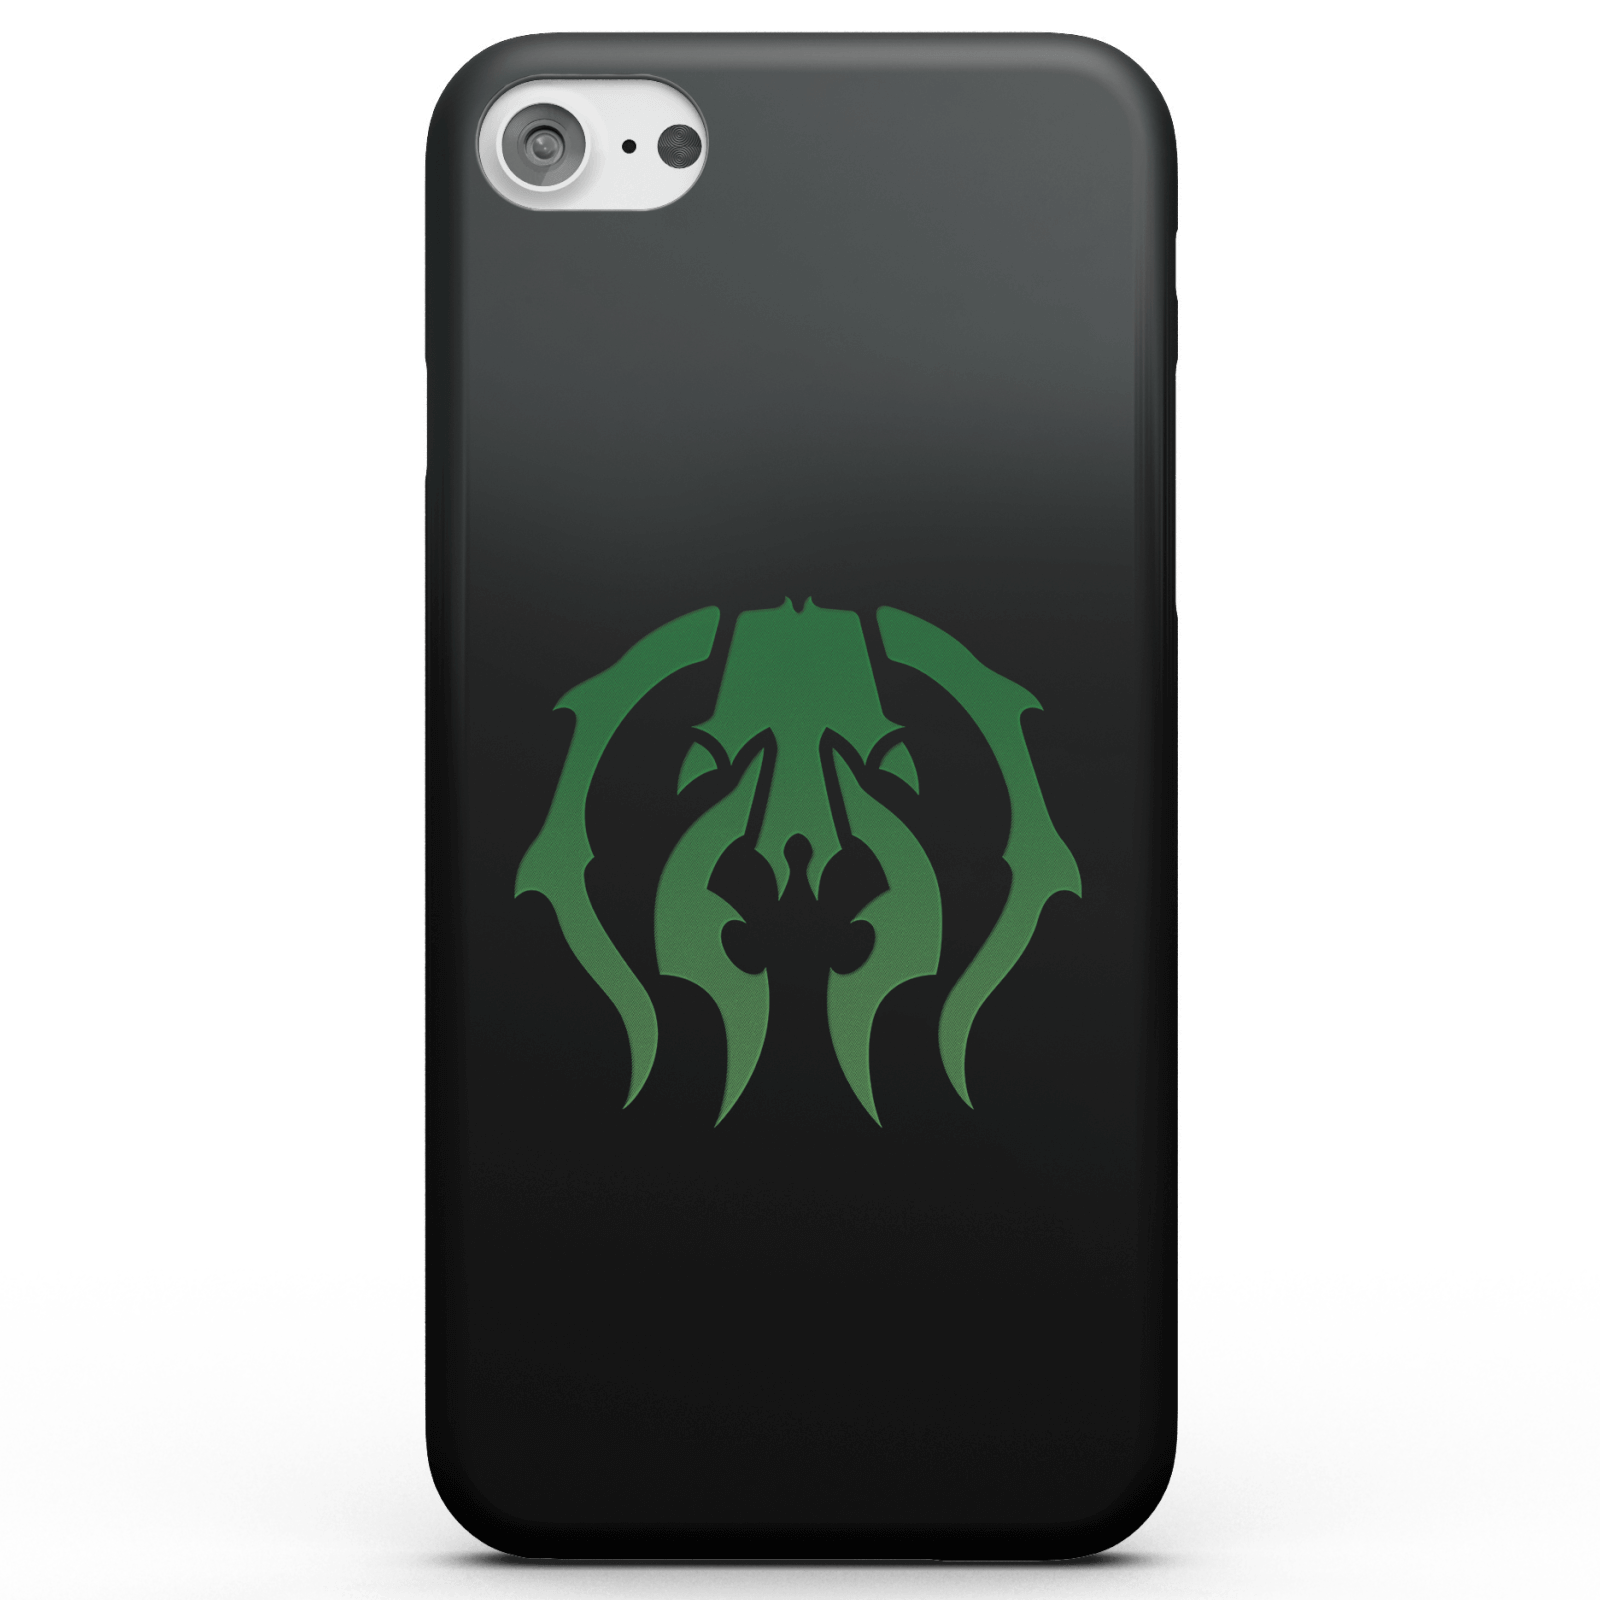 Magic The Gathering Golgari Phone Case for iPhone and Android - iPhone 6 - Tough Case - Matte